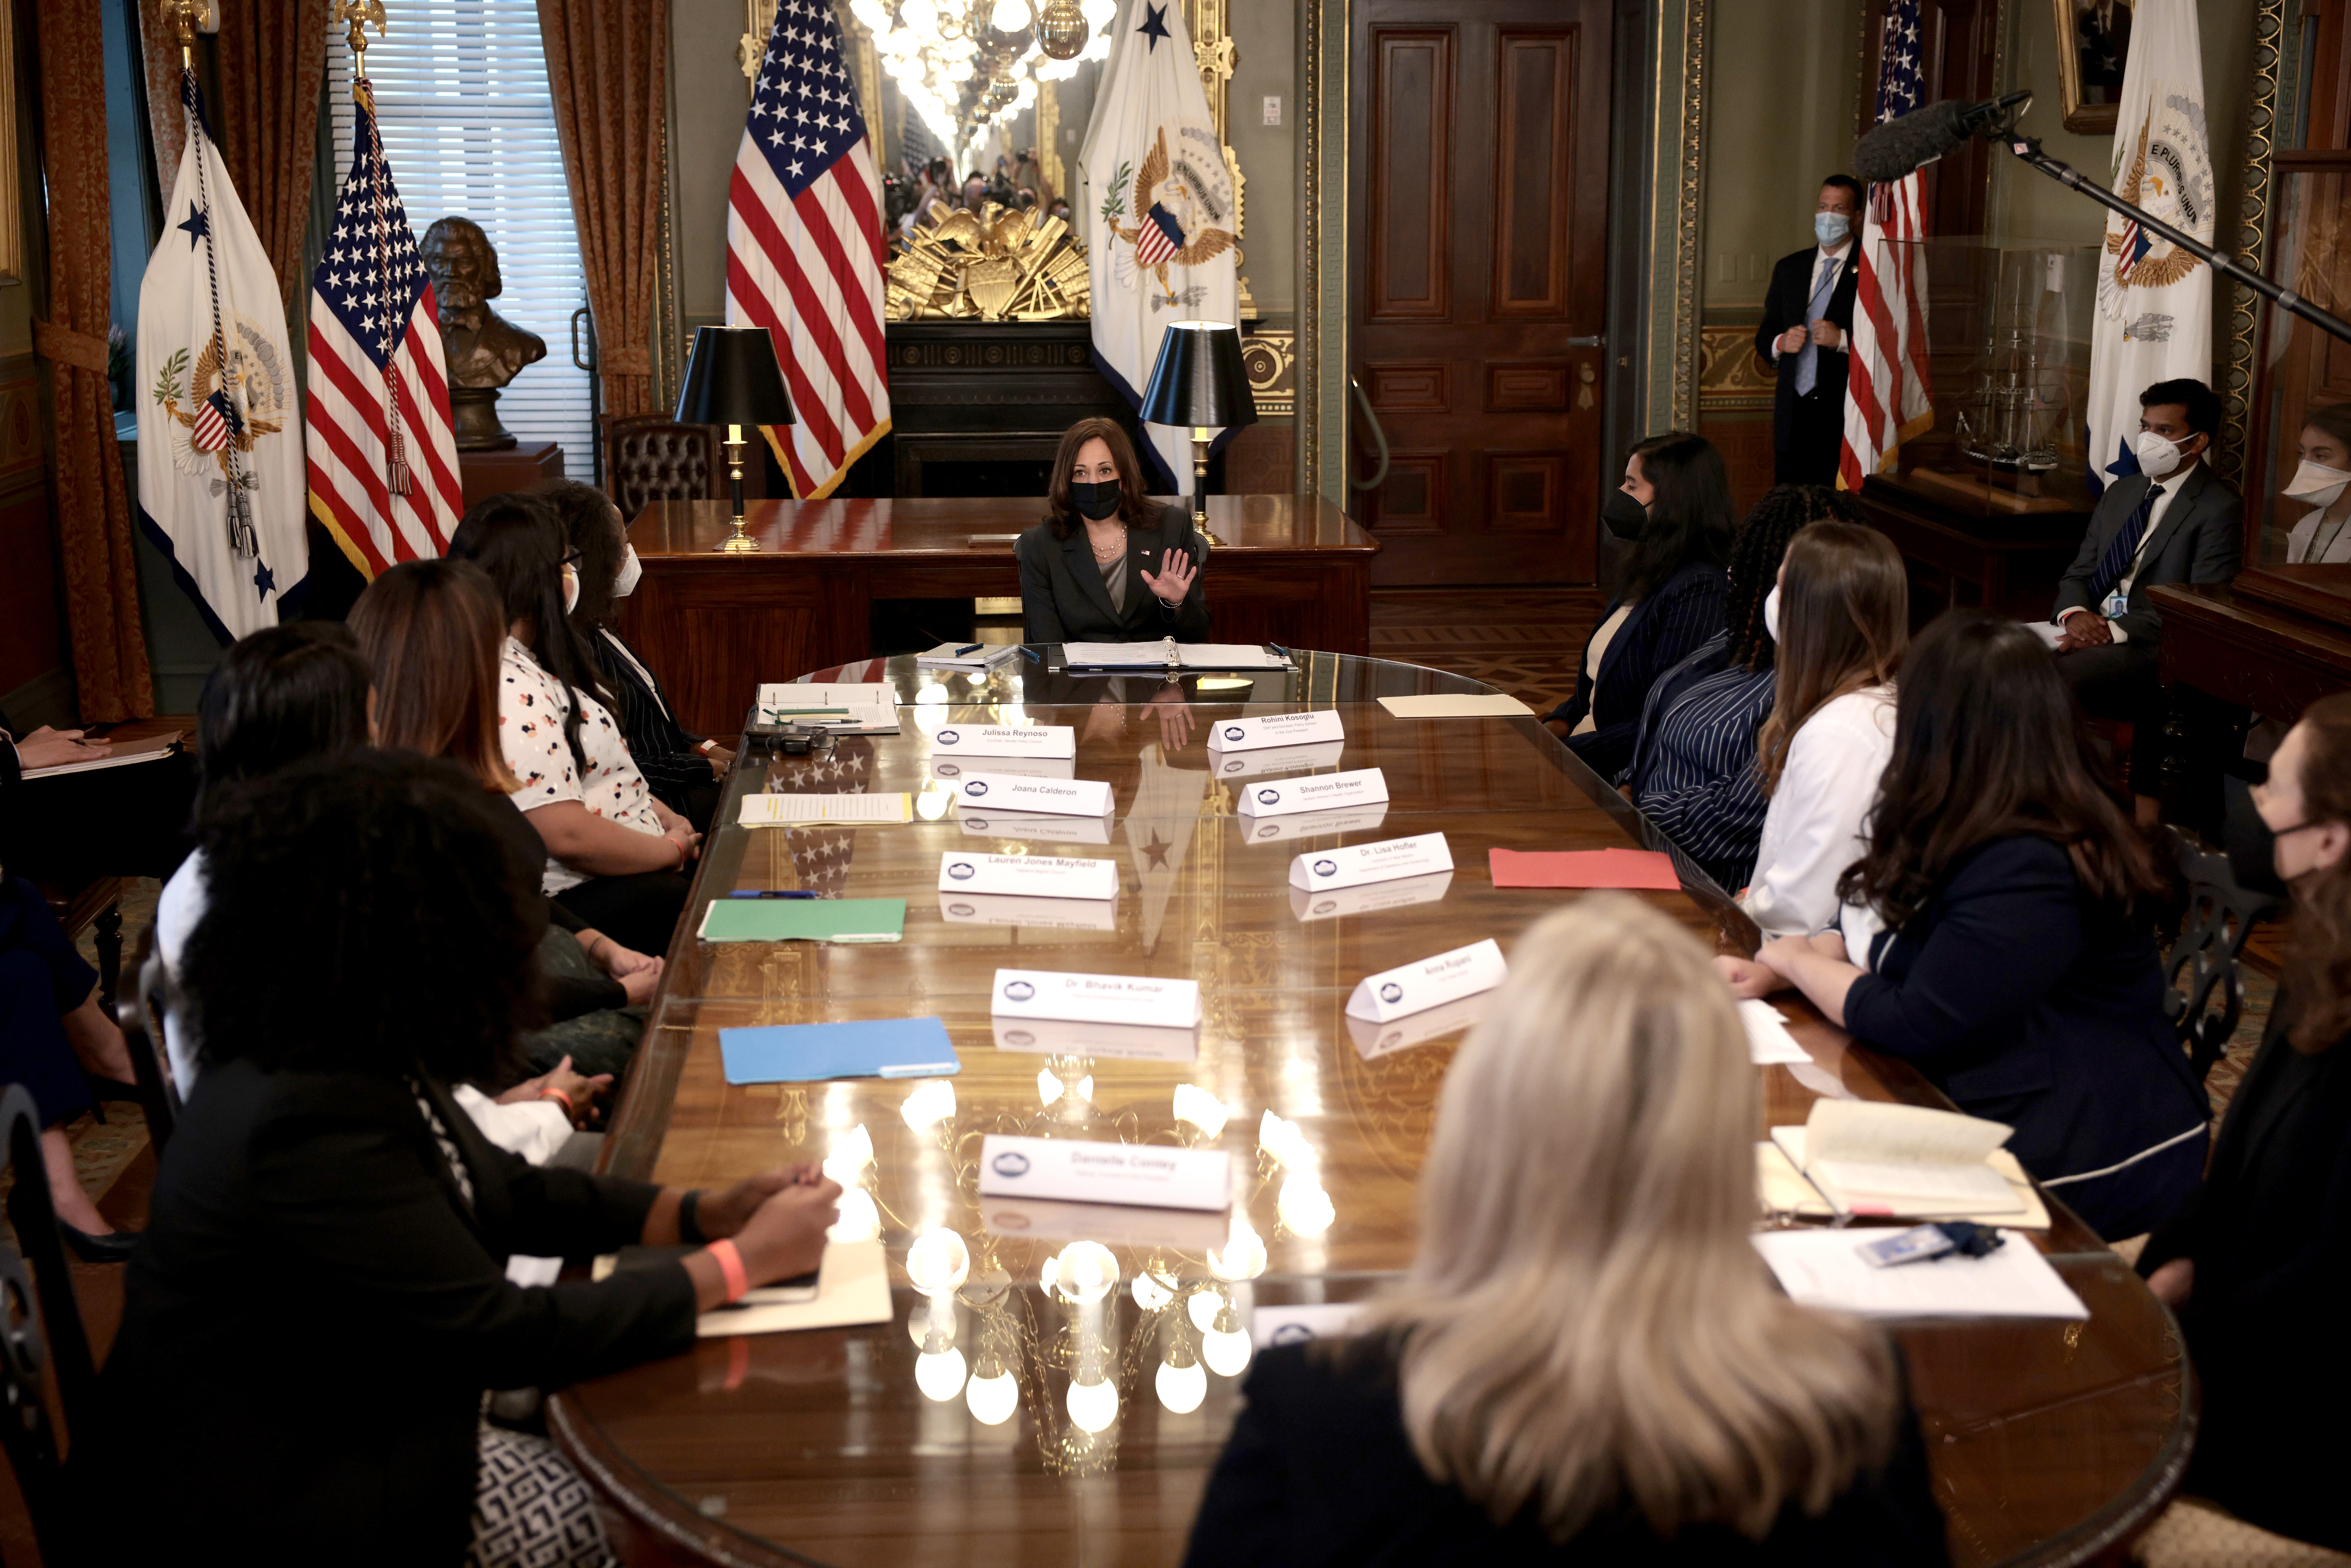 Kamala Harris speaks during a roundtable discussion on reproductive rights with health workers and women's rights activists in the Eisenhower Office Building in Washington, D.C. (Photo by Anna Moneymaker/Getty Images)